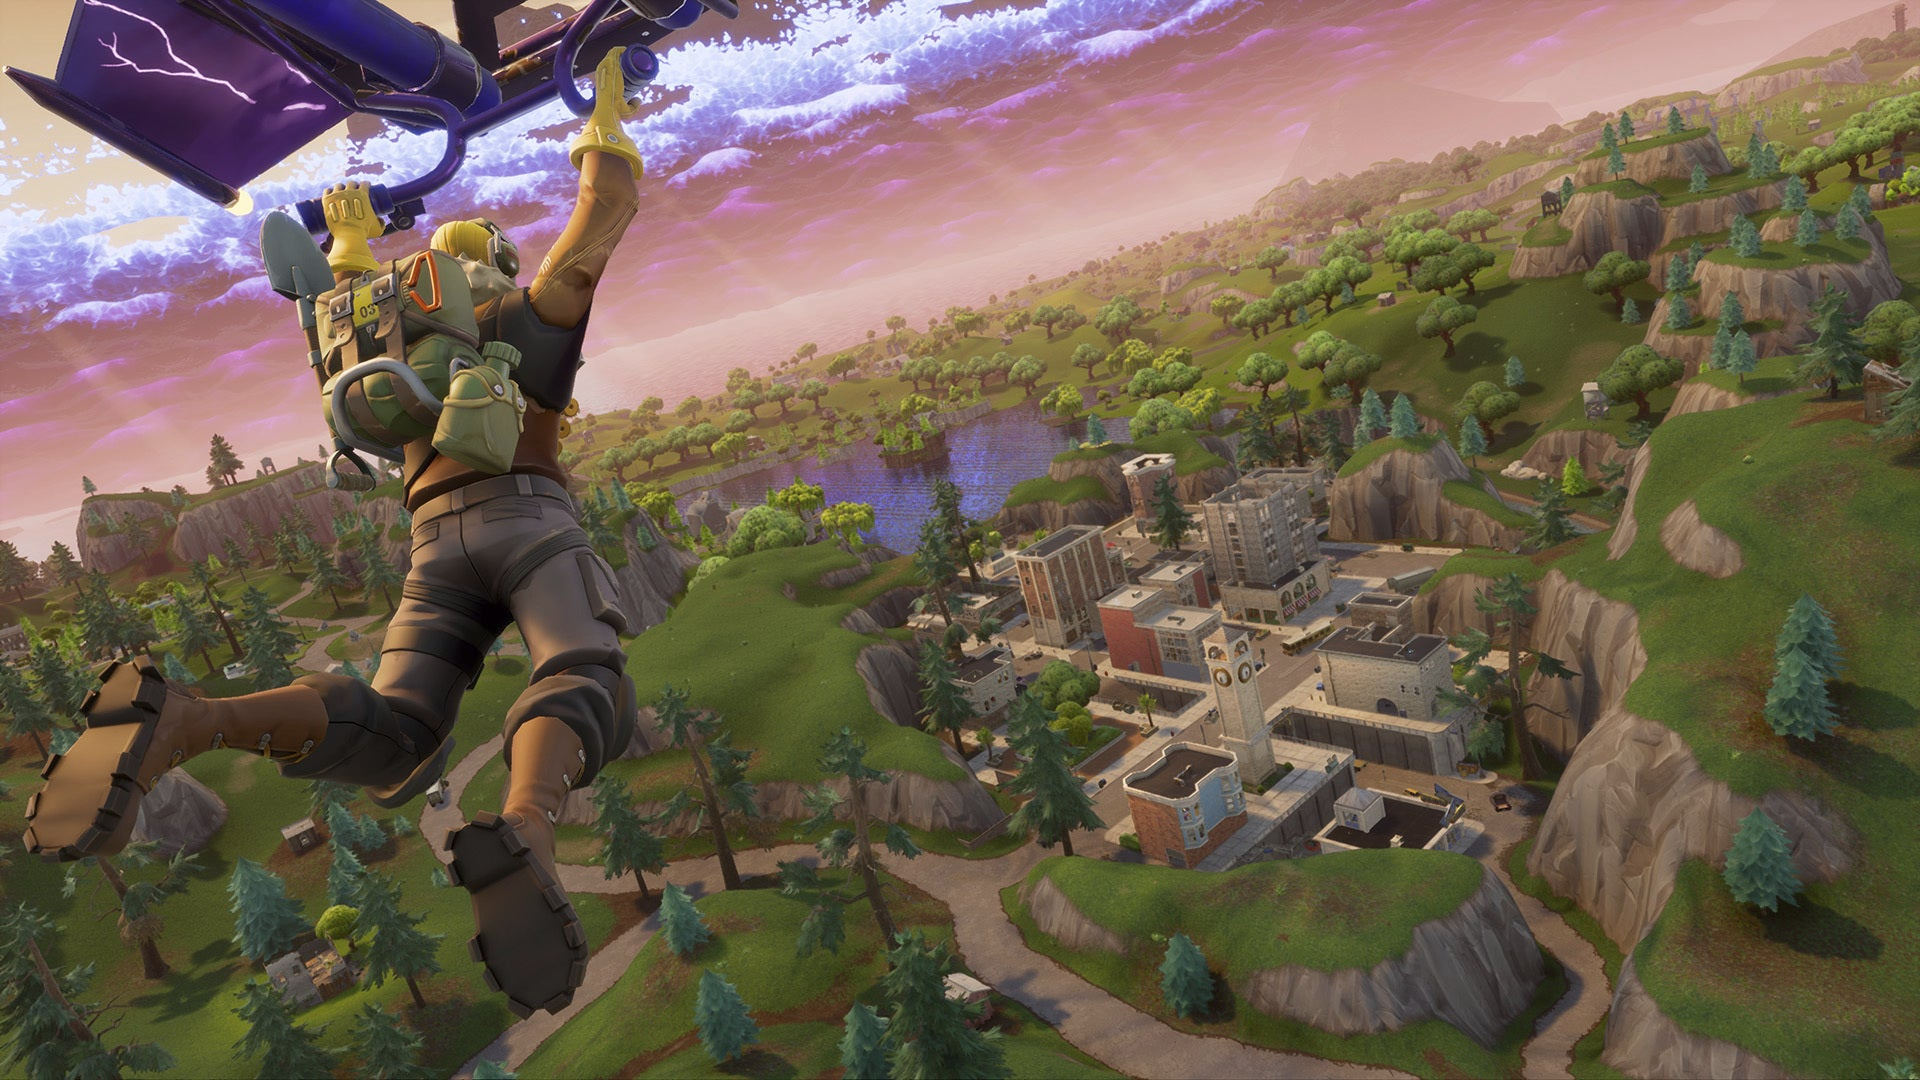 Alliteration Algorithm Generates Genius Fortnite Frivolity